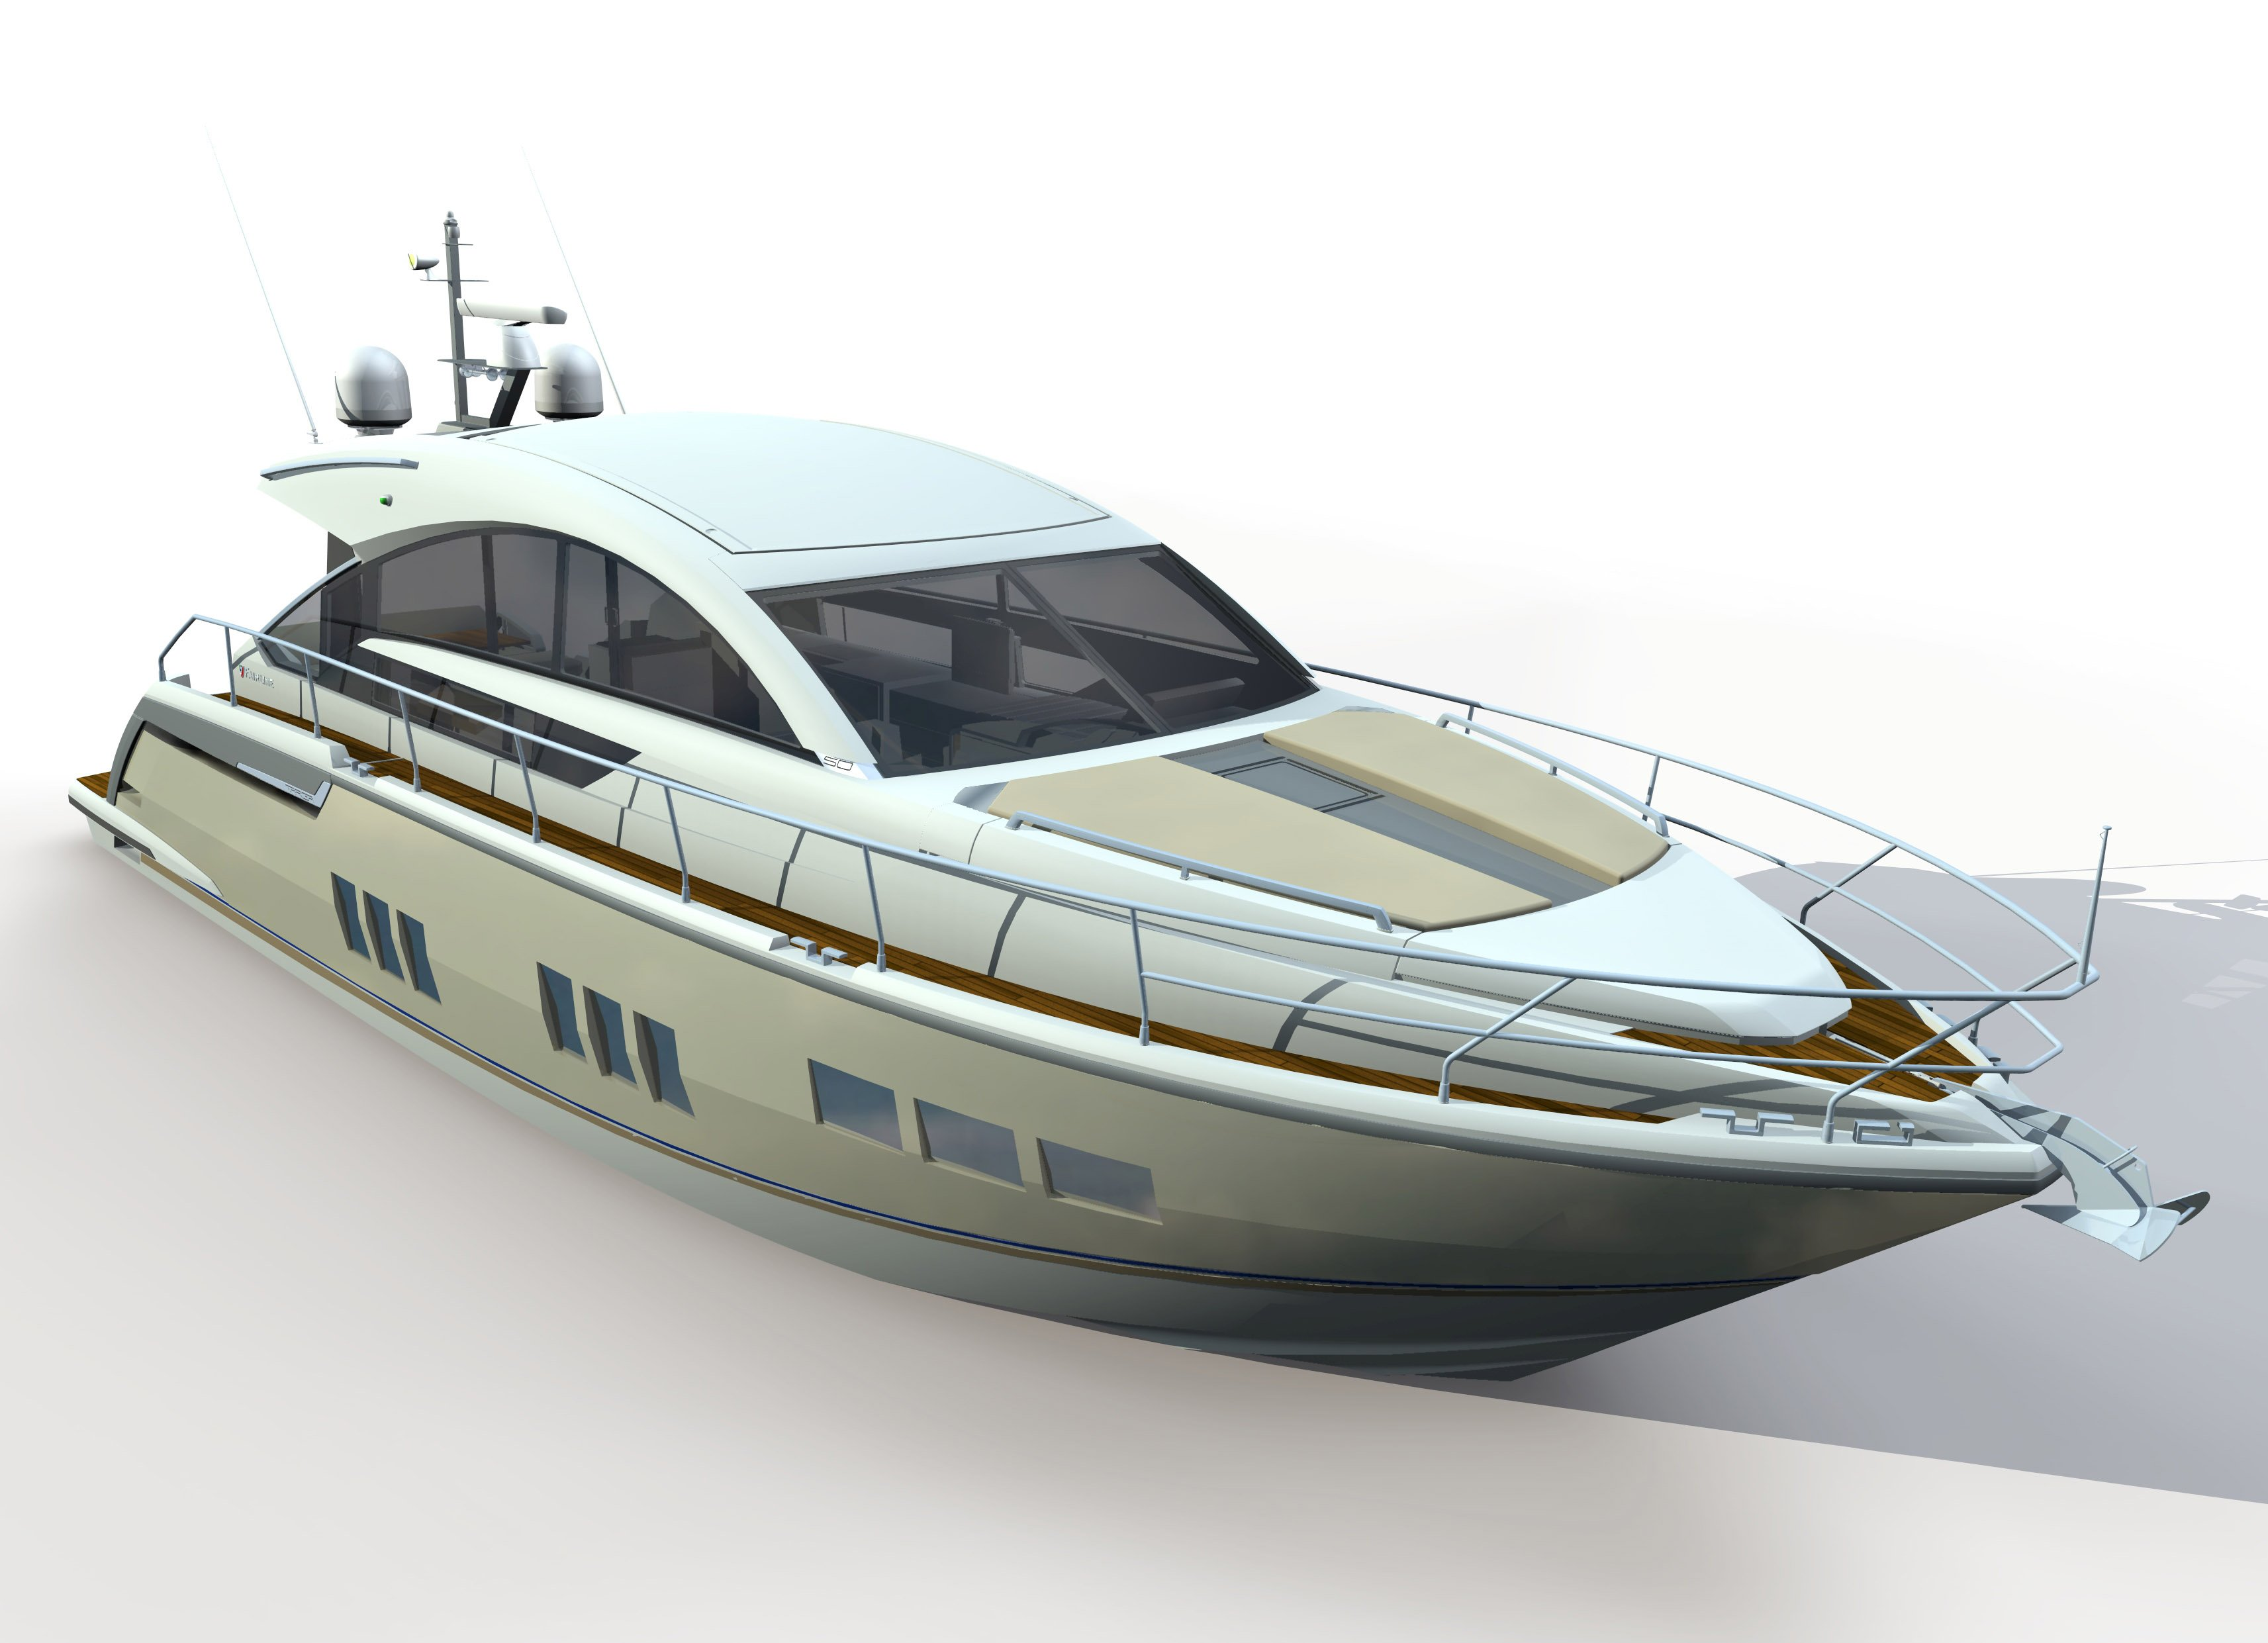 2011 Motor Boat Of The Year Awards Winner Of The